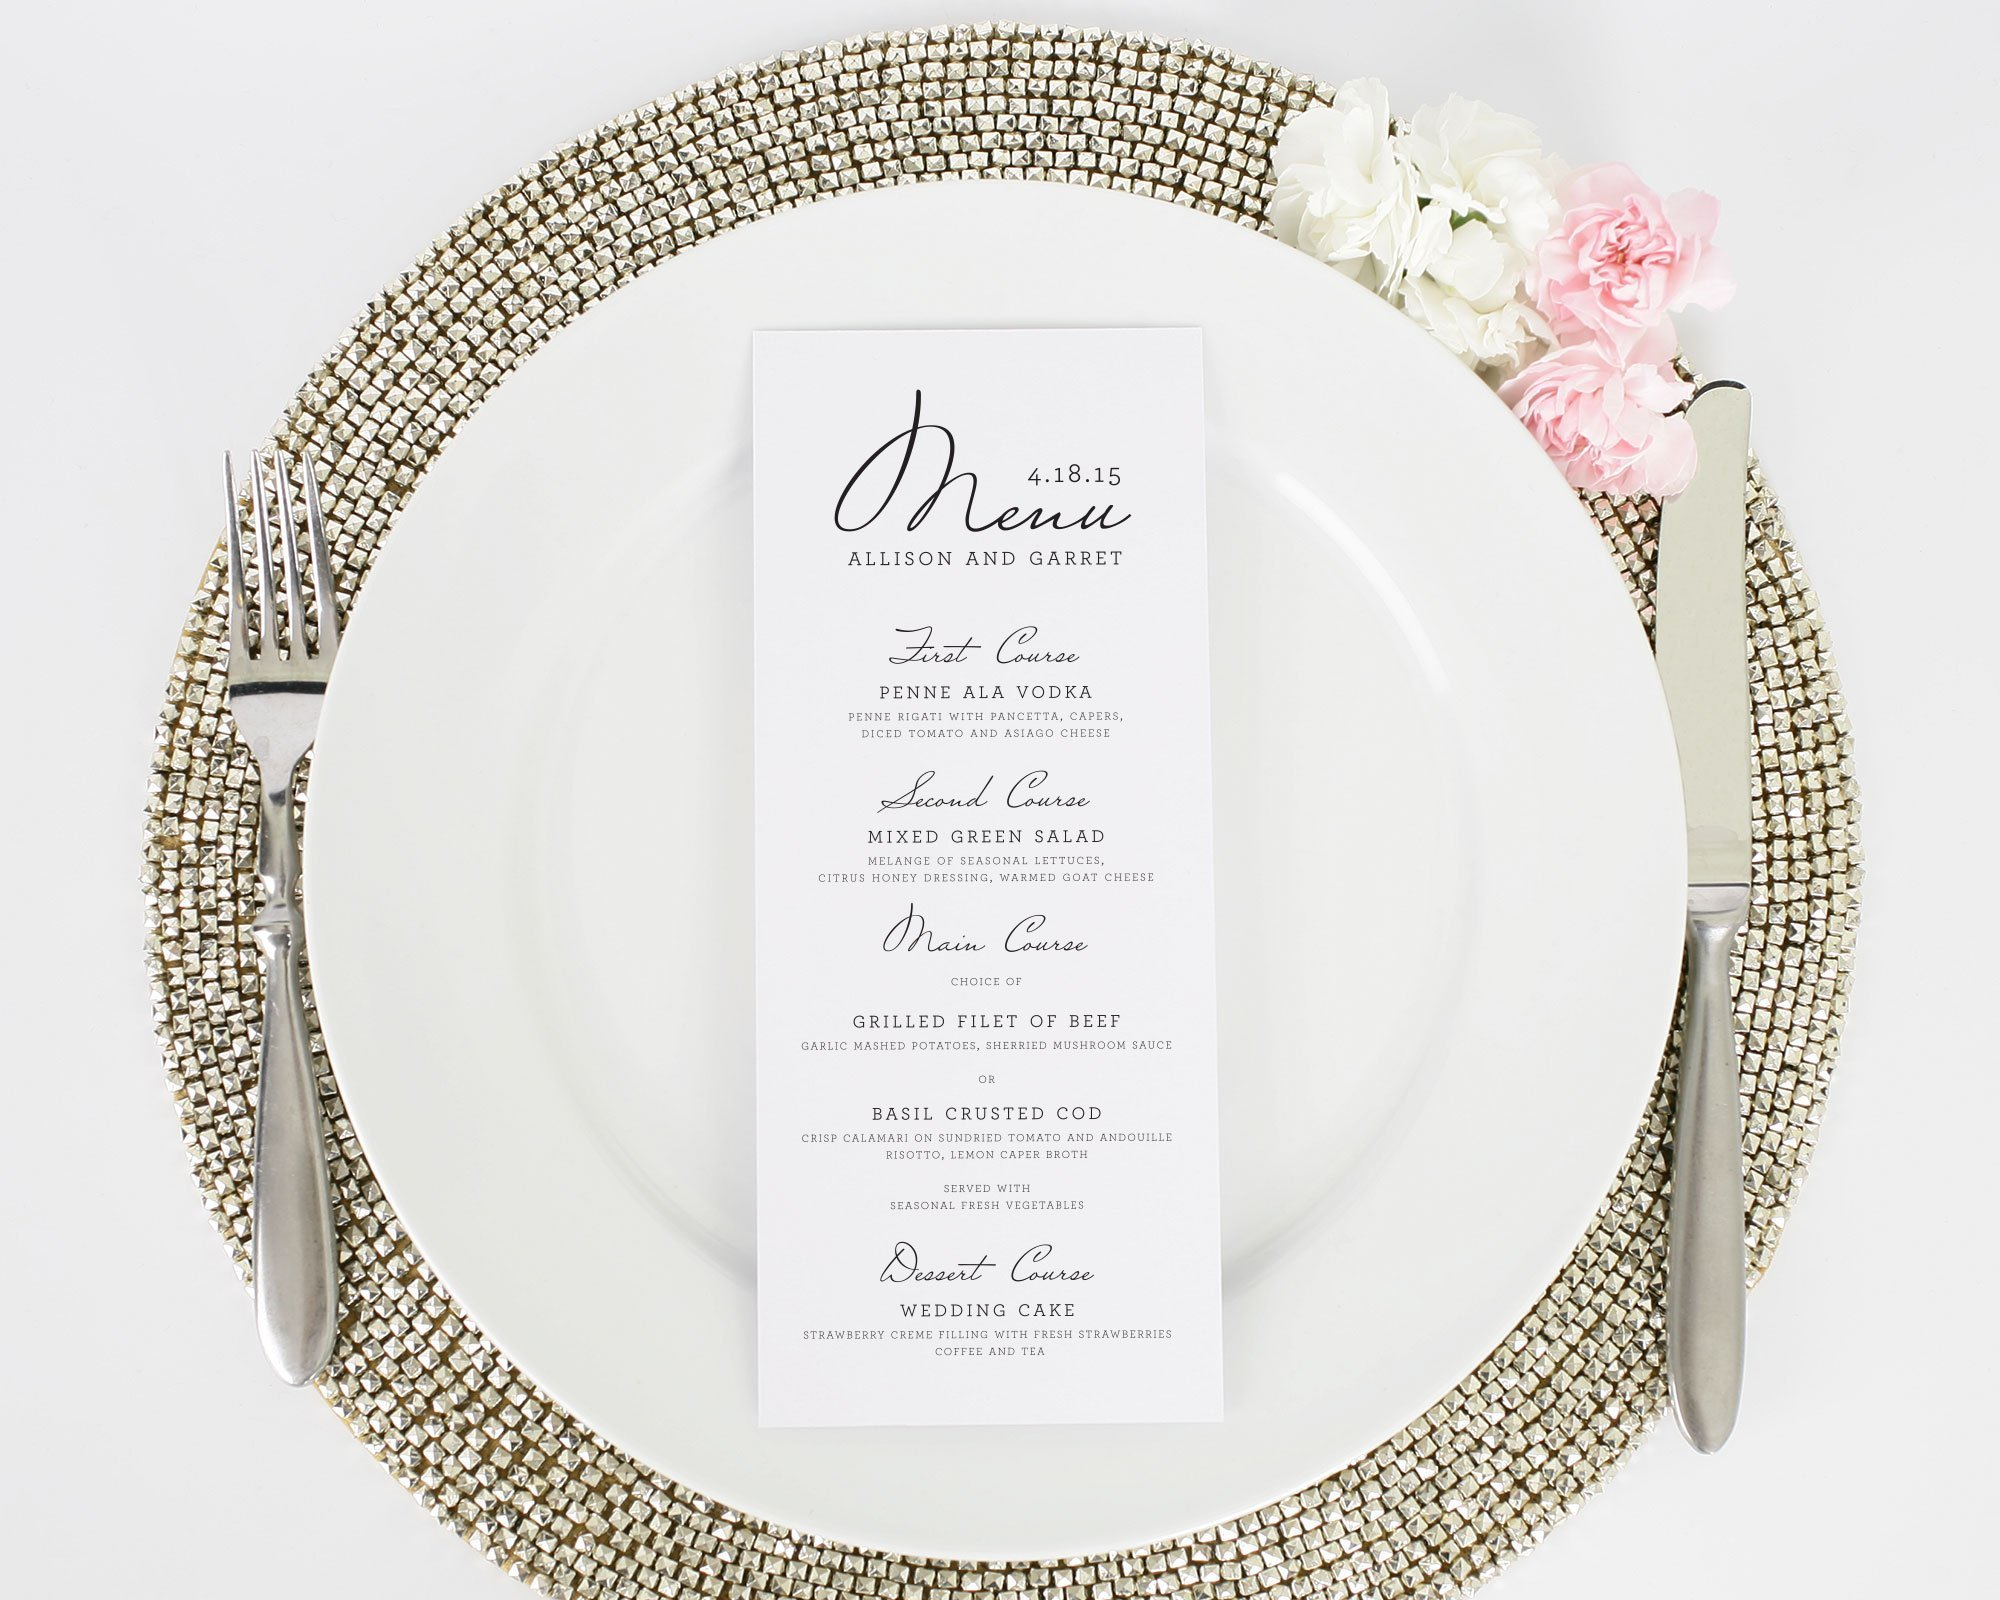 Country Wedding Invitation Wording is luxury invitations layout